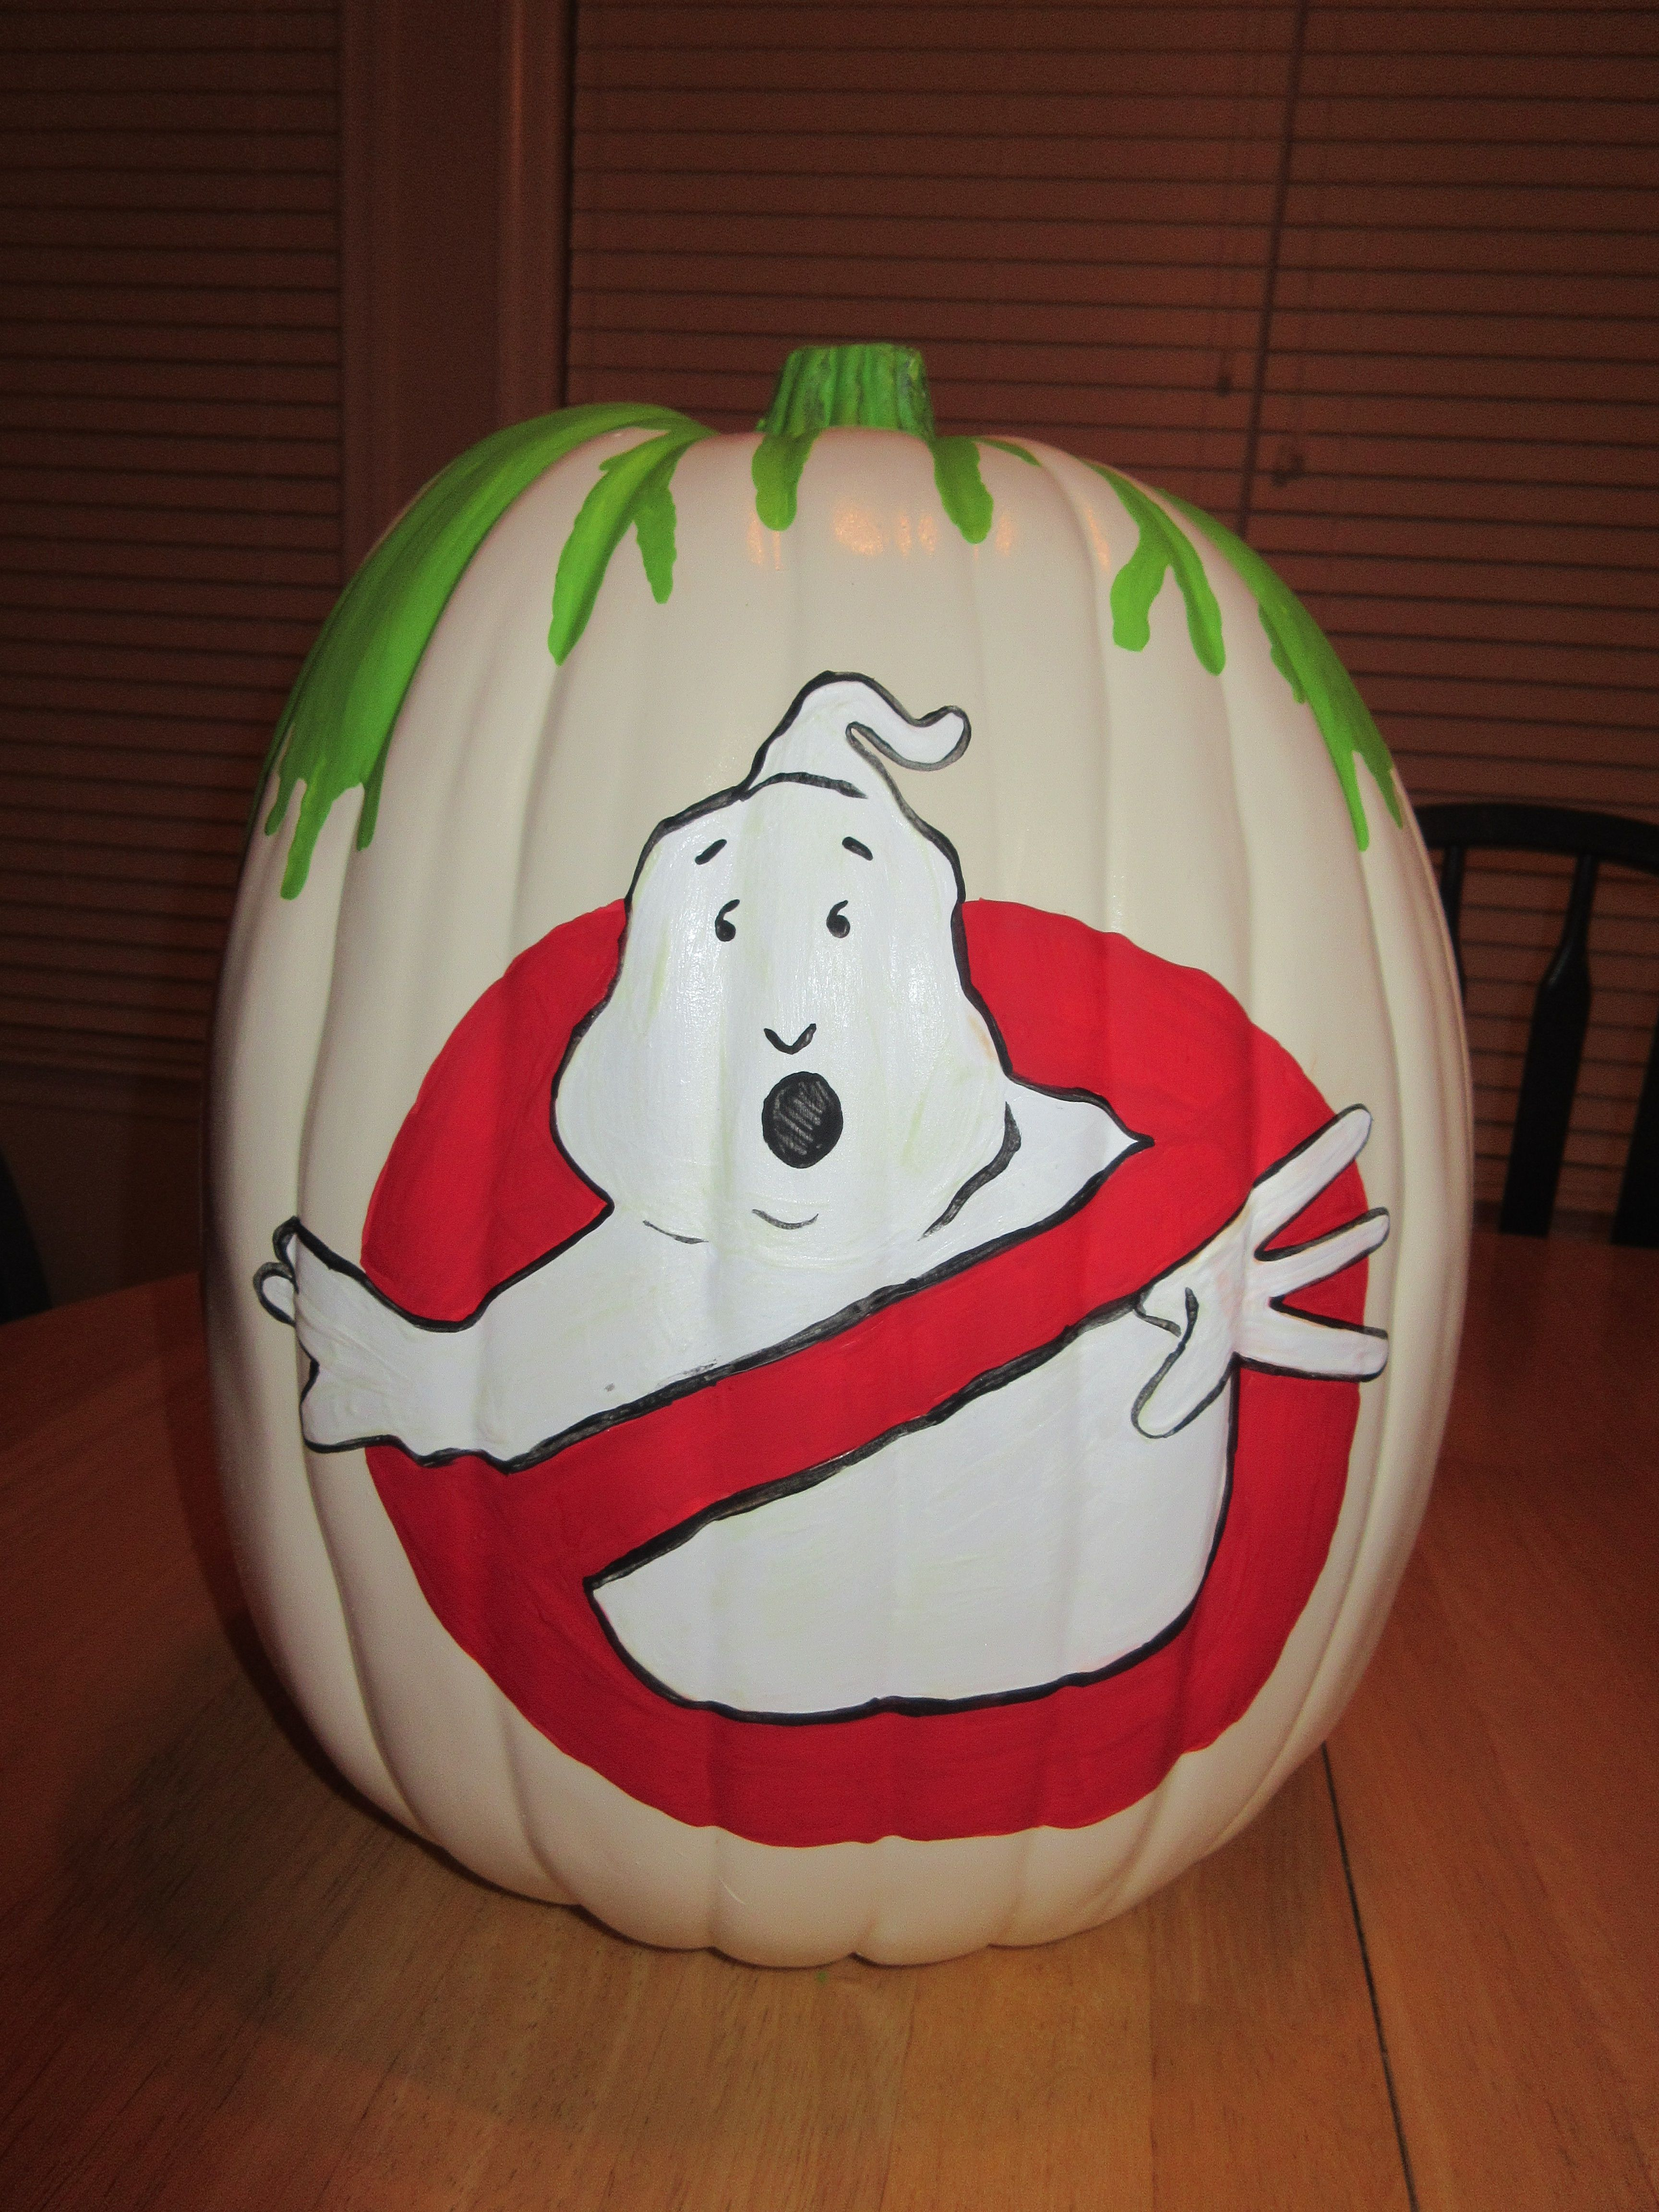 25 Unusual Pumpkin Decorating Ideas - Without Carving! #pumkinpaintideas